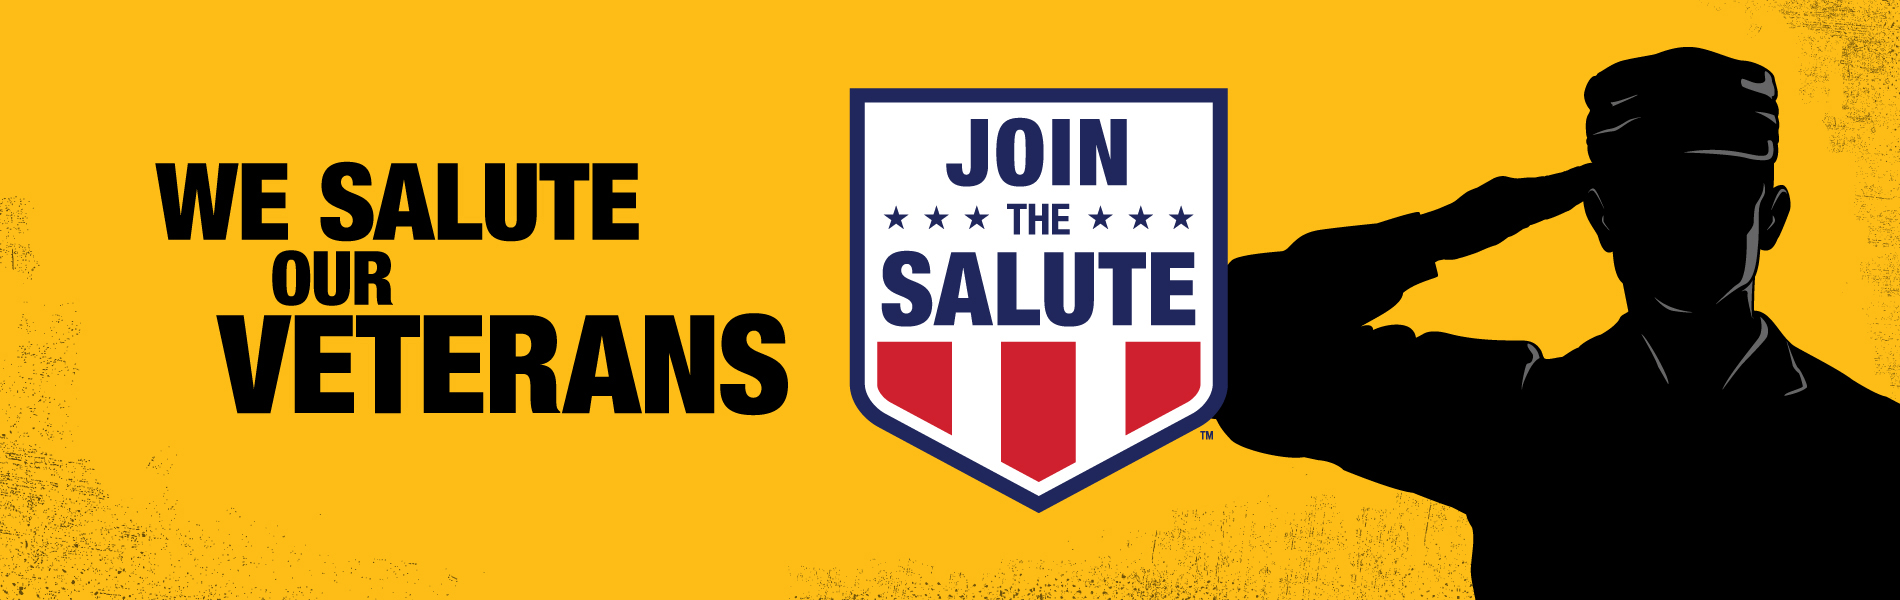 DeWalt invites you to Join the Salute